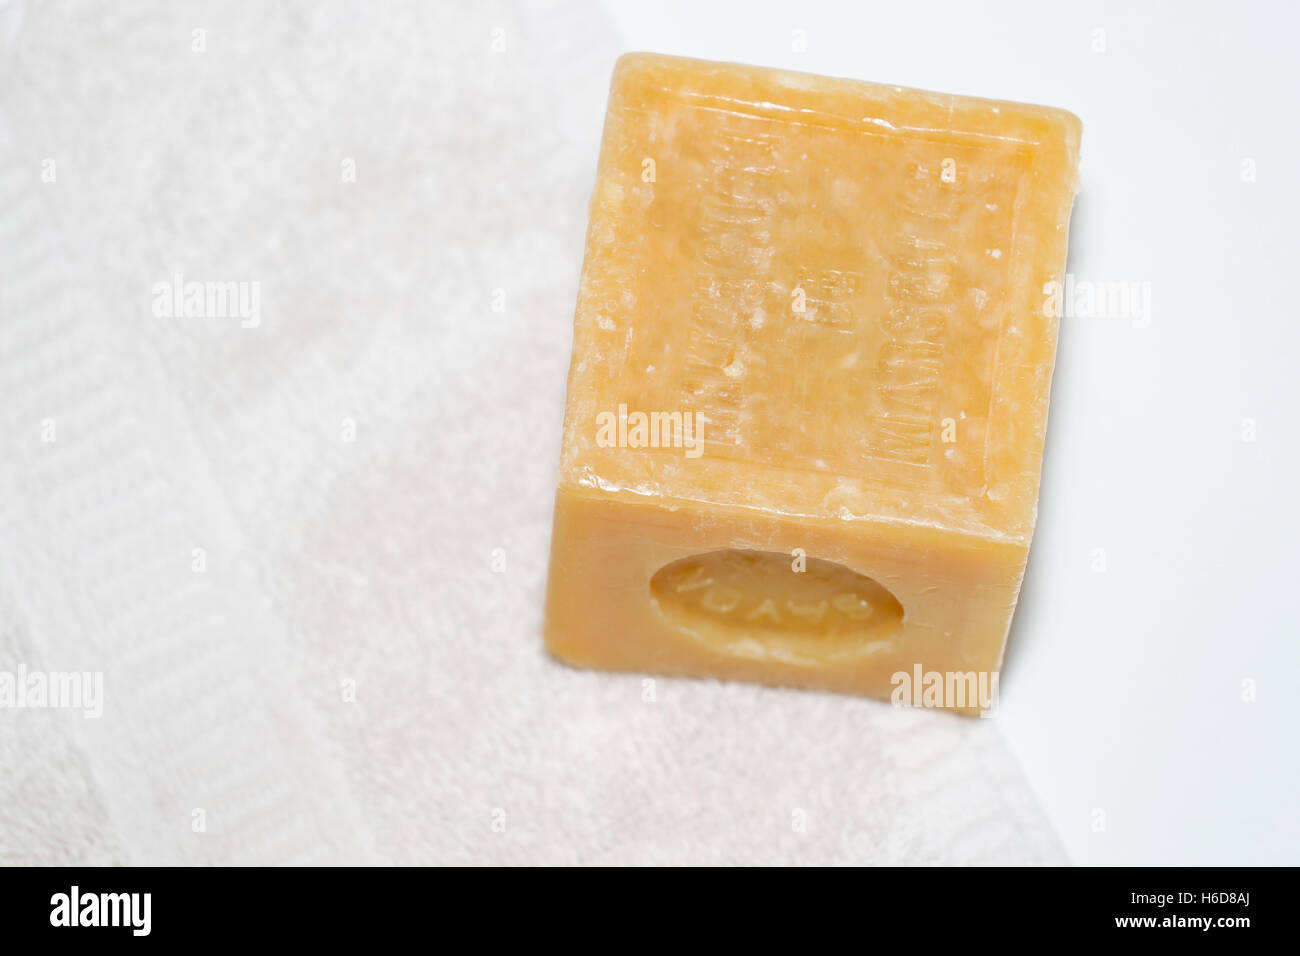 A cube of Marseille soap - Stock Image